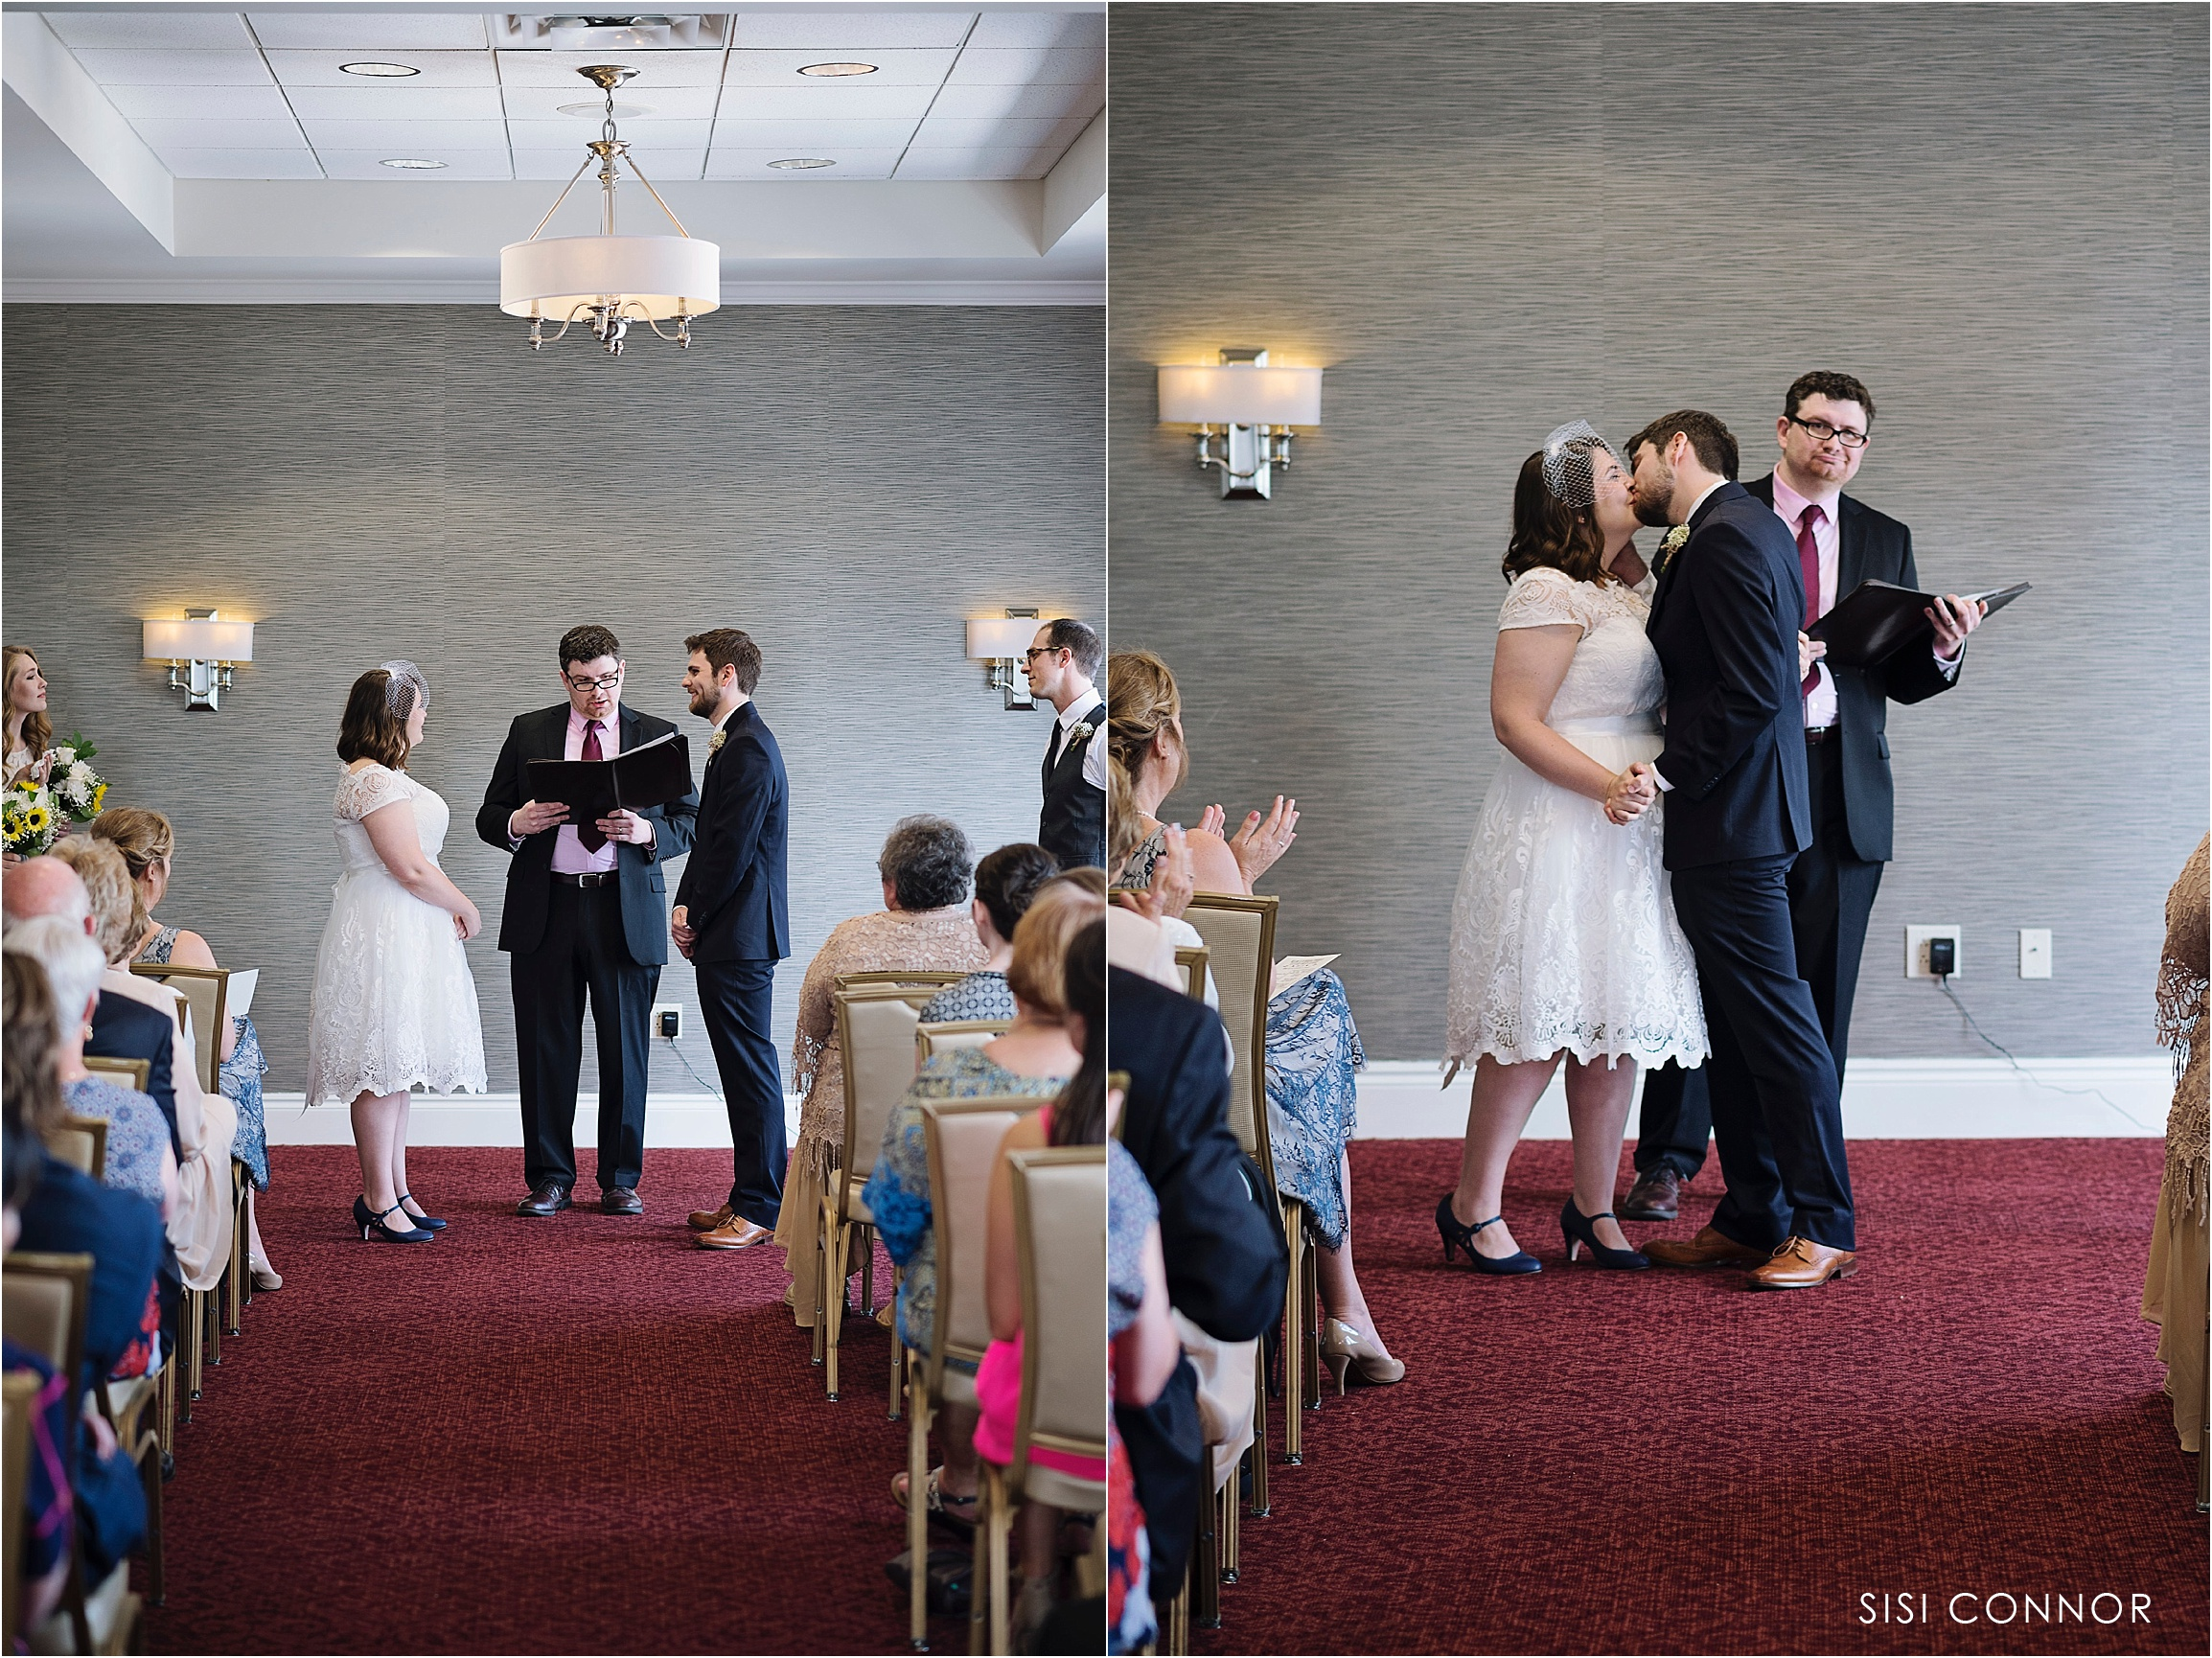 Hotel Blackhawk ballroom wedding ceremony